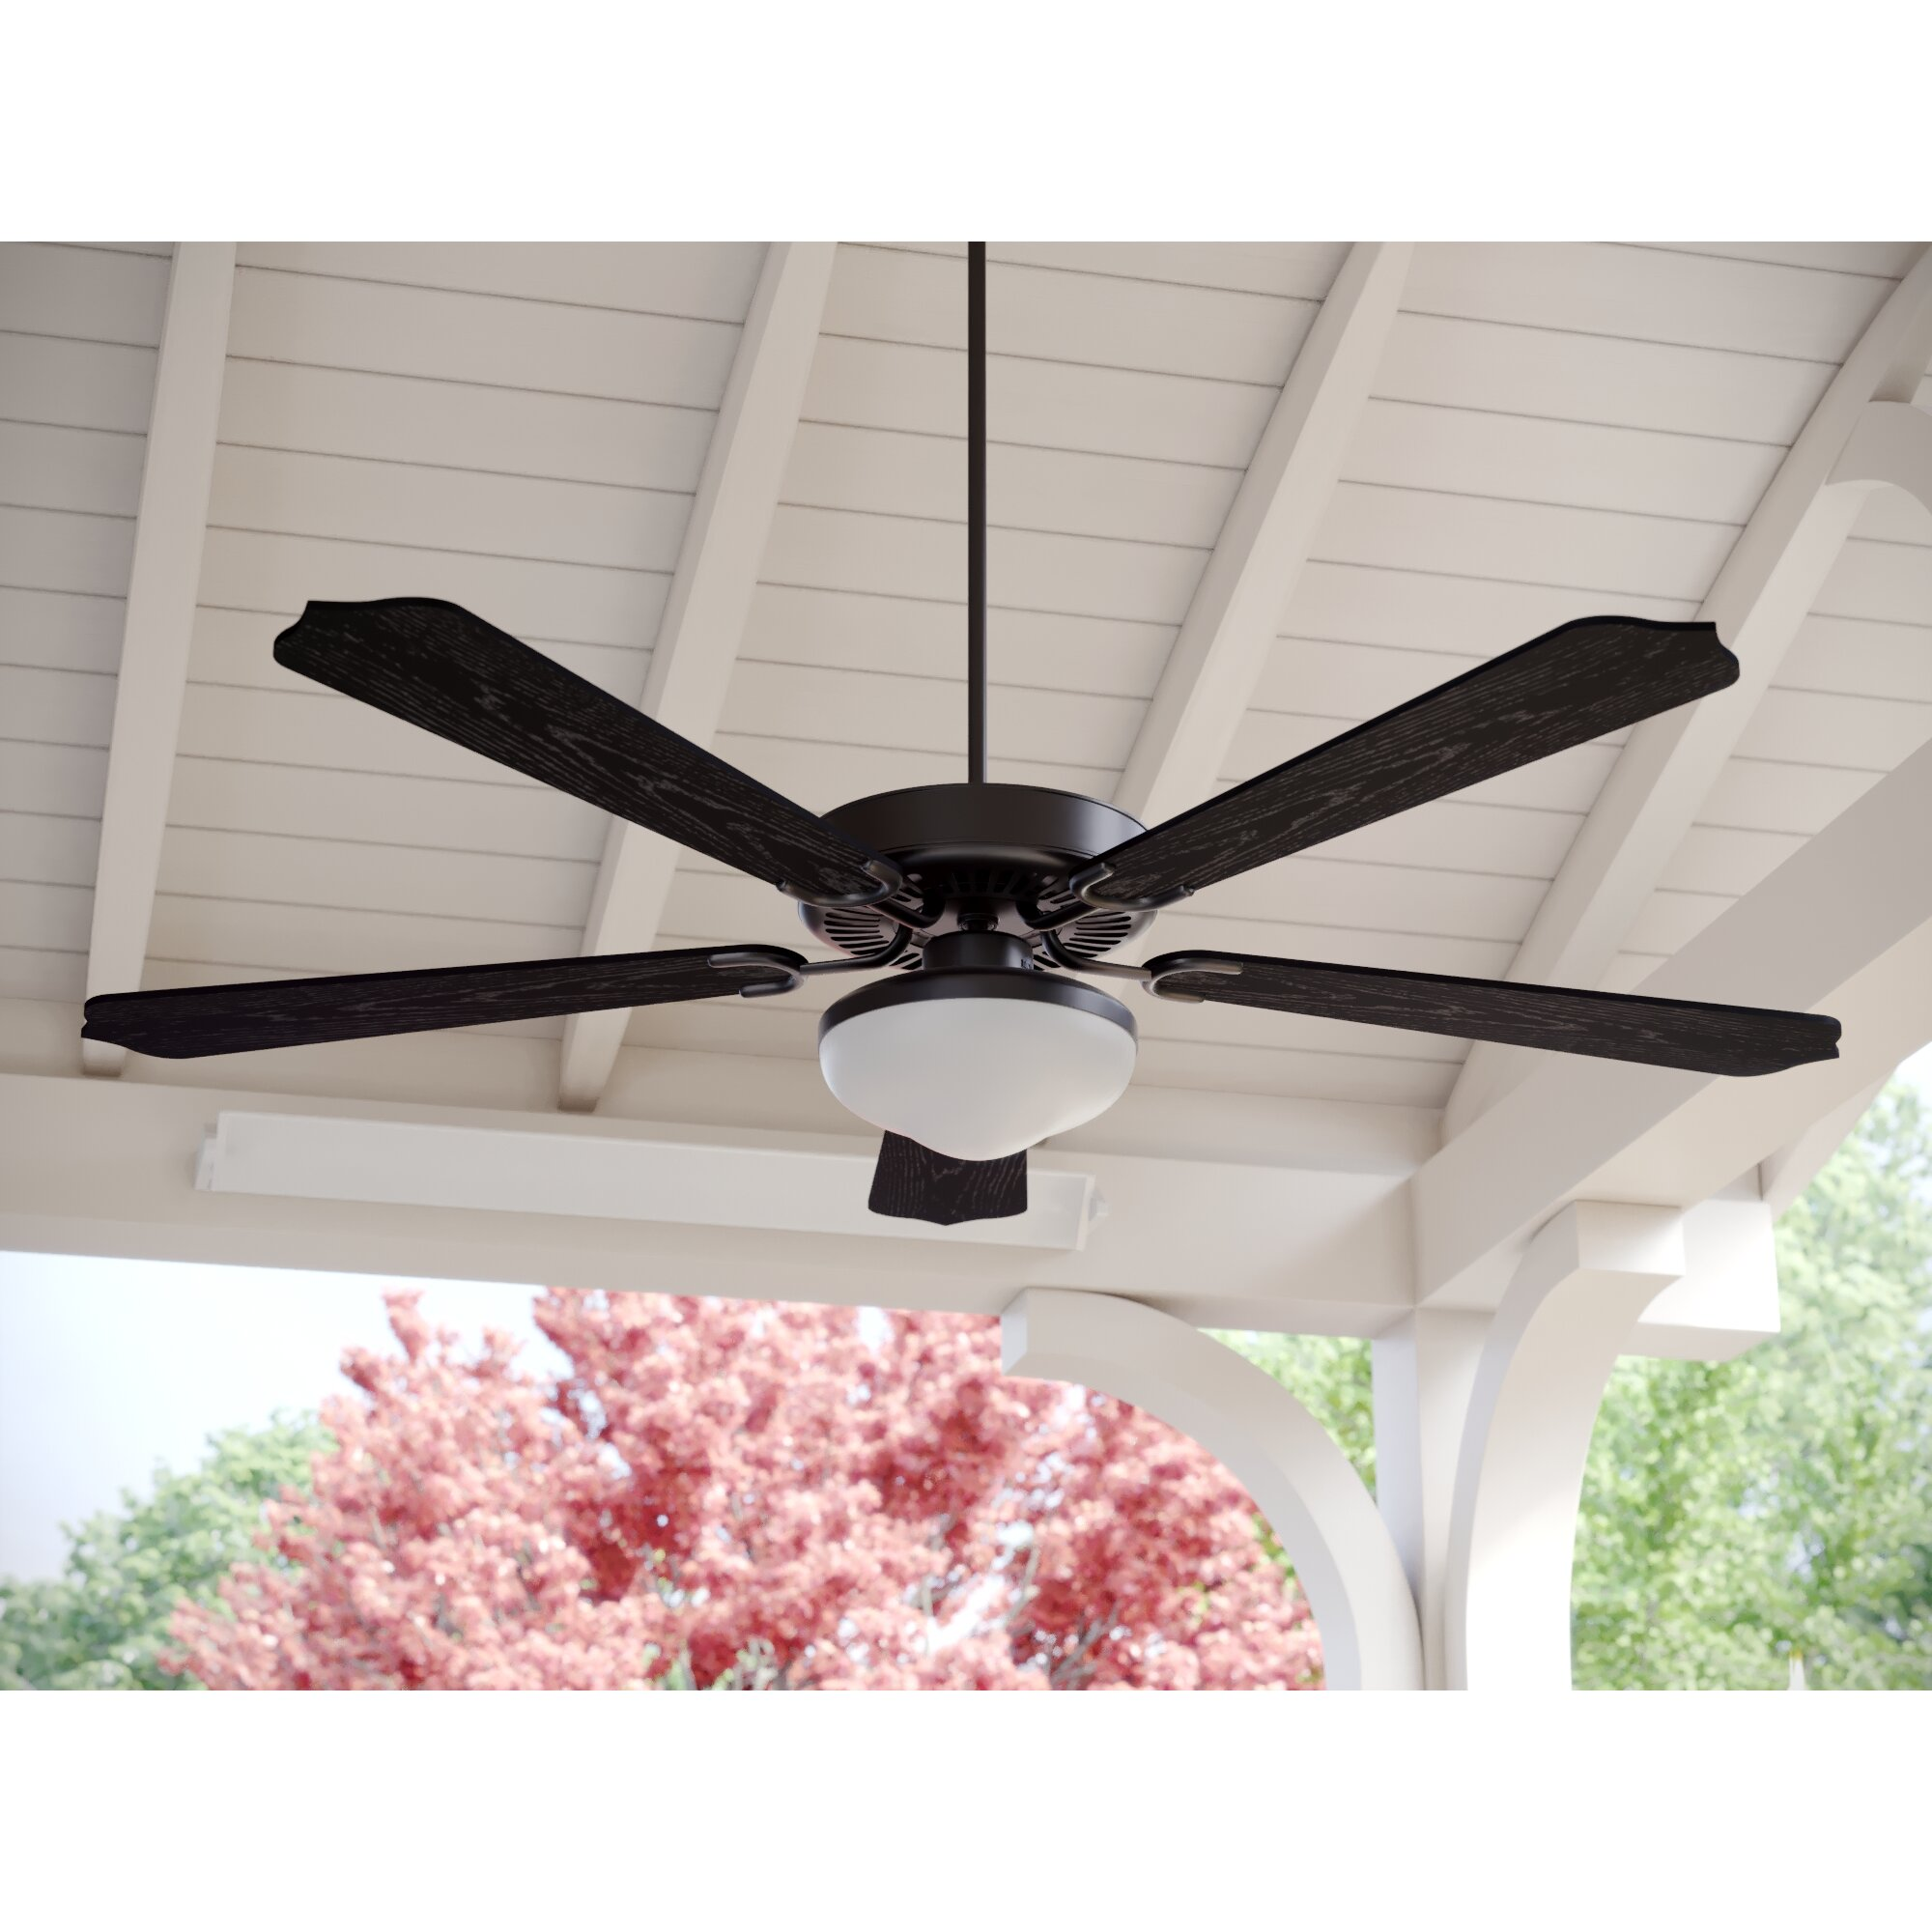 Darby home co 52 sawyerville 5 blade outdoor ceiling fan Outdoor ceiling fan sale